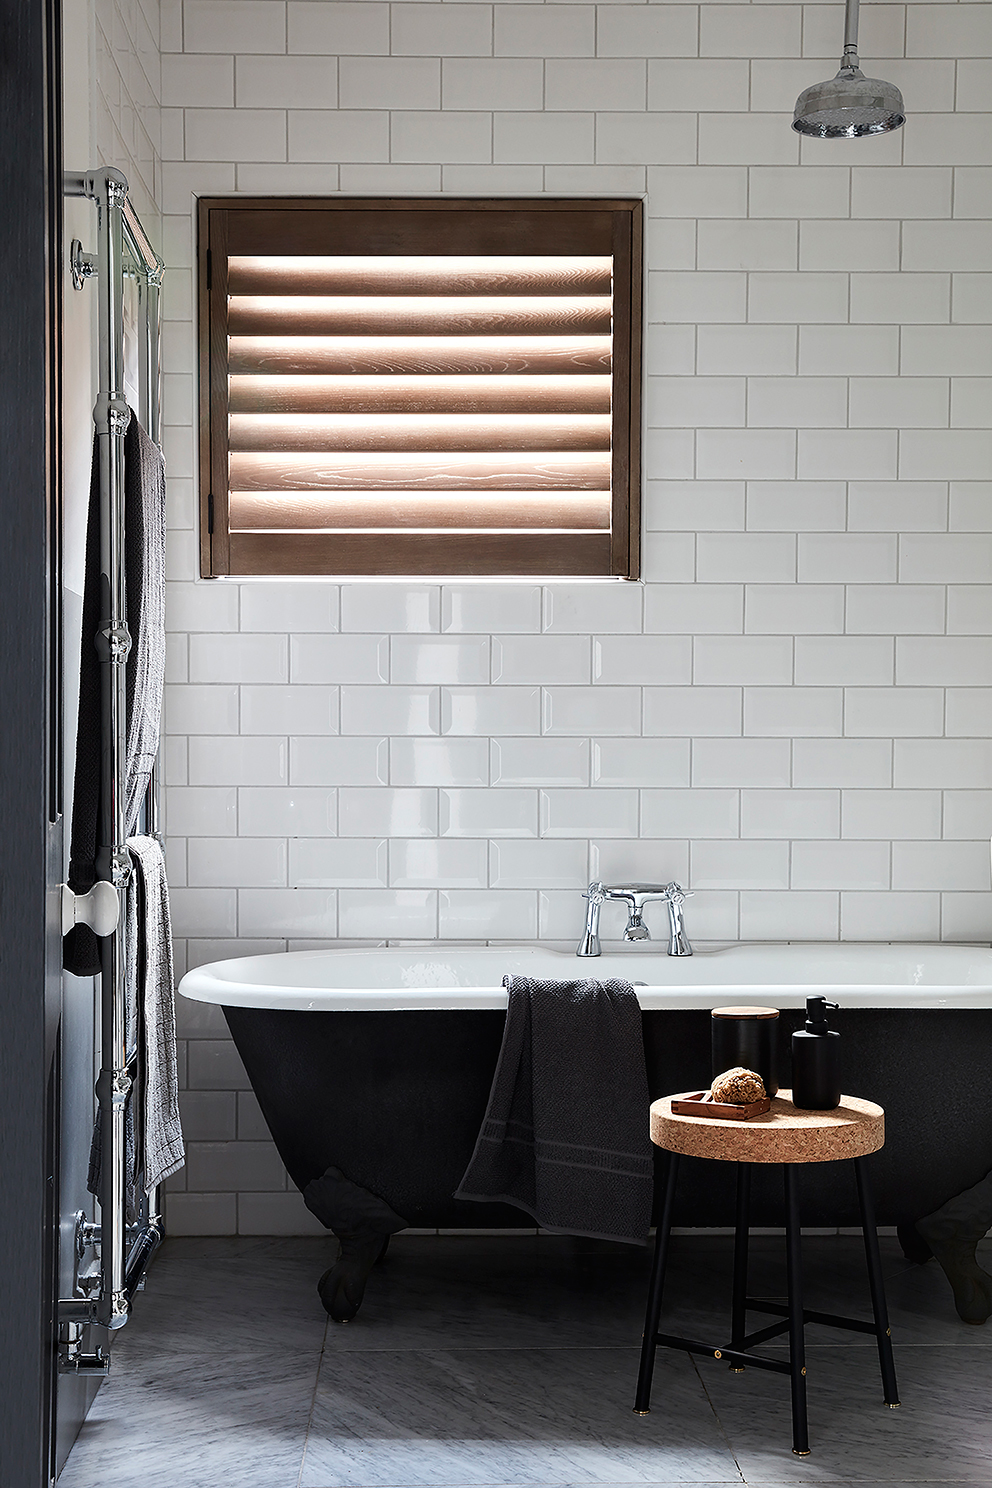 Shutterly Fabulous - French For Pineapple Blog - nautral wood shutter in bathroom with white subway tiles and black claw footed bath